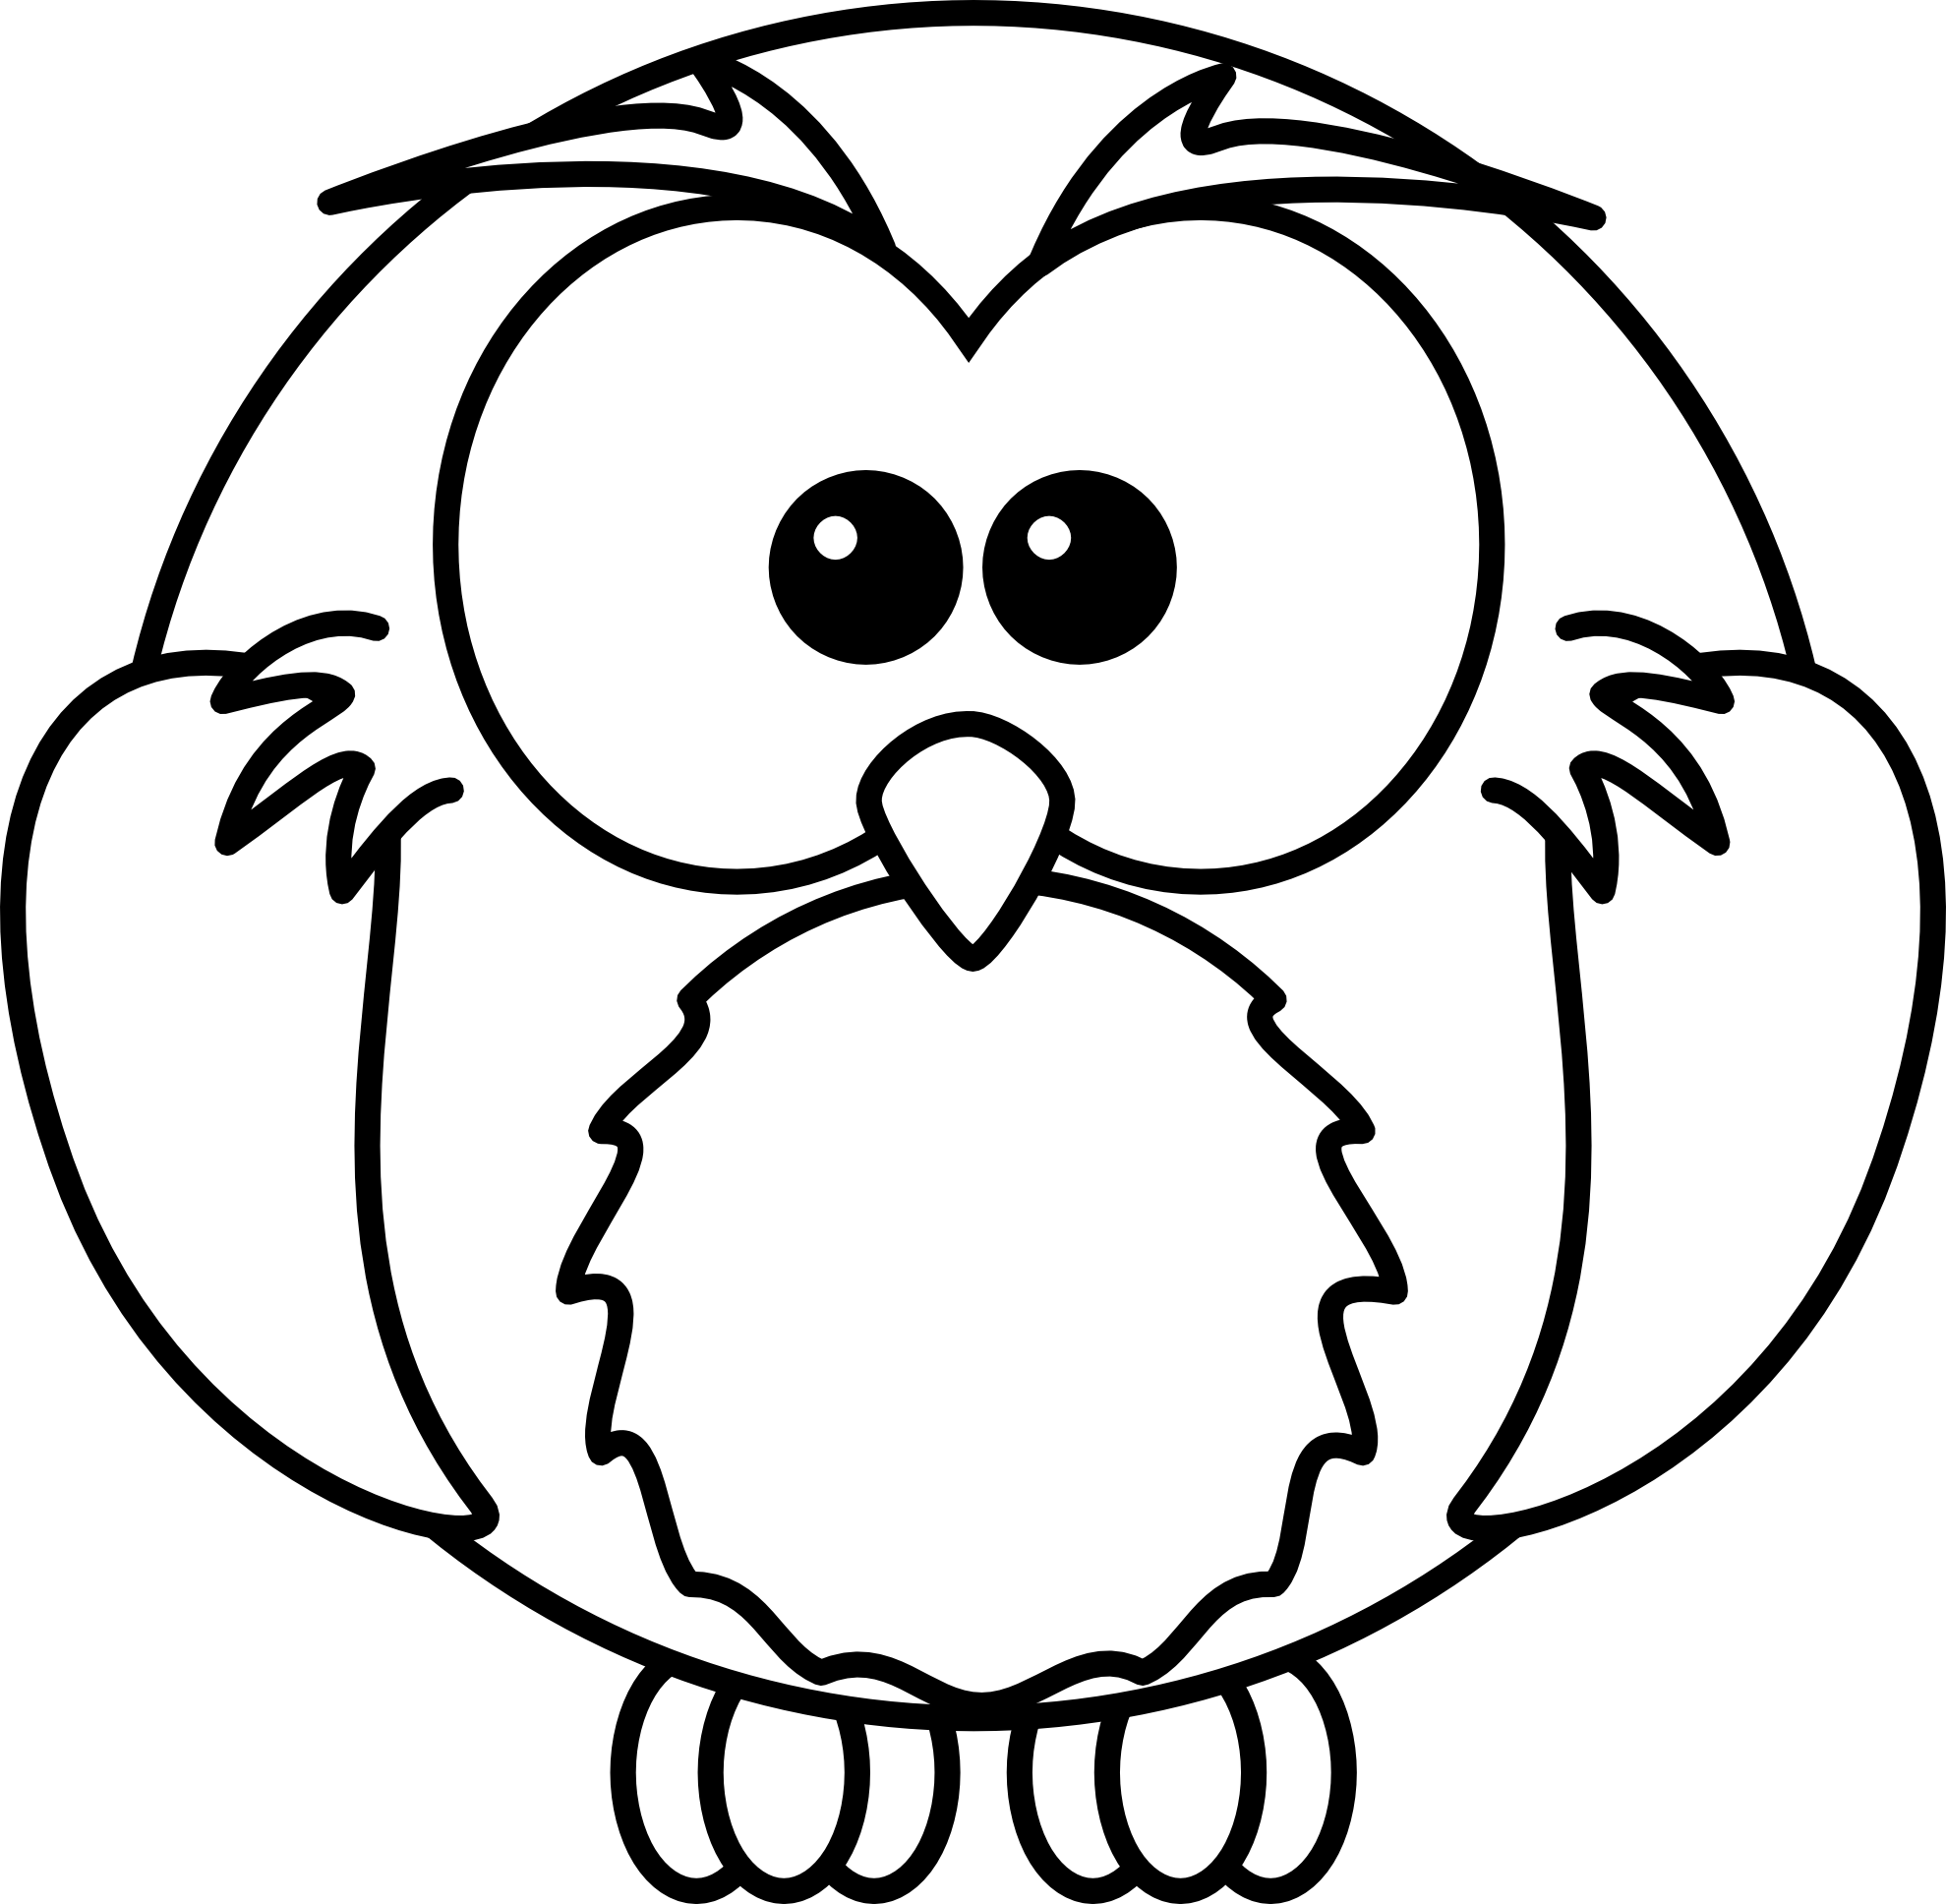 Log Clipart Black And White | Clipart Panda - Free Clipart ...